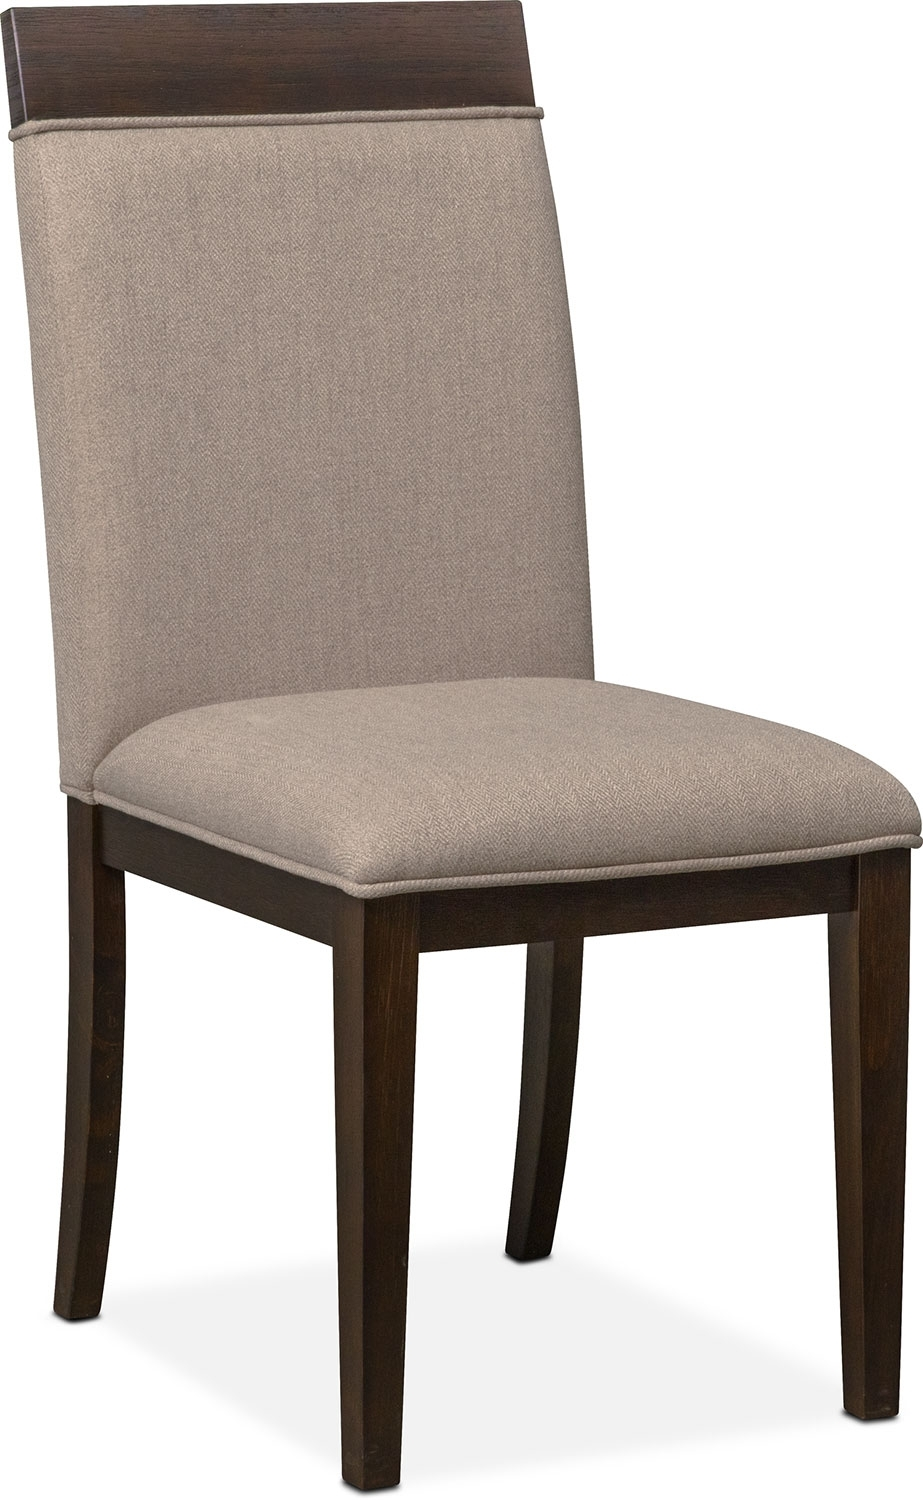 Gavin Side Chair – Brownstone | Value City Furniture And Mattresses With Regard To 2017 Gavin 6 Piece Dining Sets With Clint Side Chairs (Photo 11 of 20)